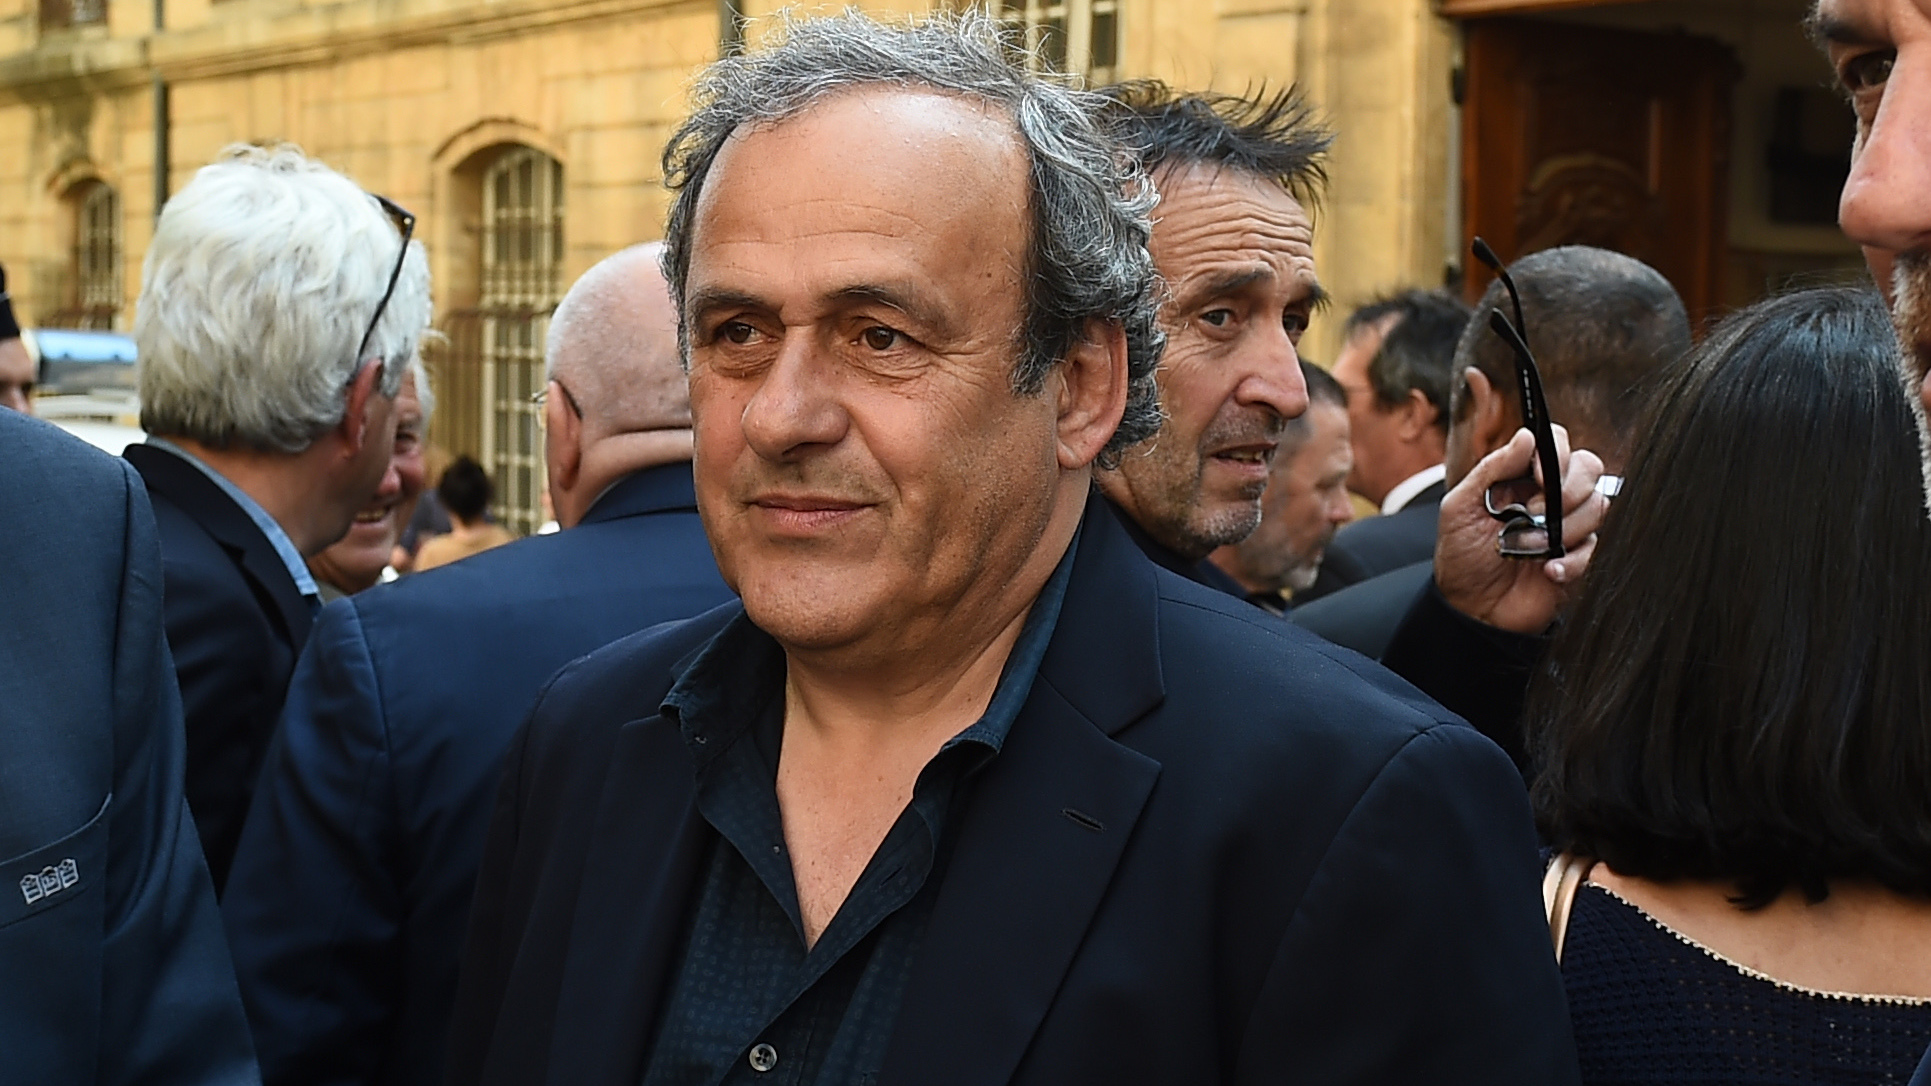 Michel Platini, Europe's Former Soccer Boss, Arrested As Part Of Qatar Inquiry